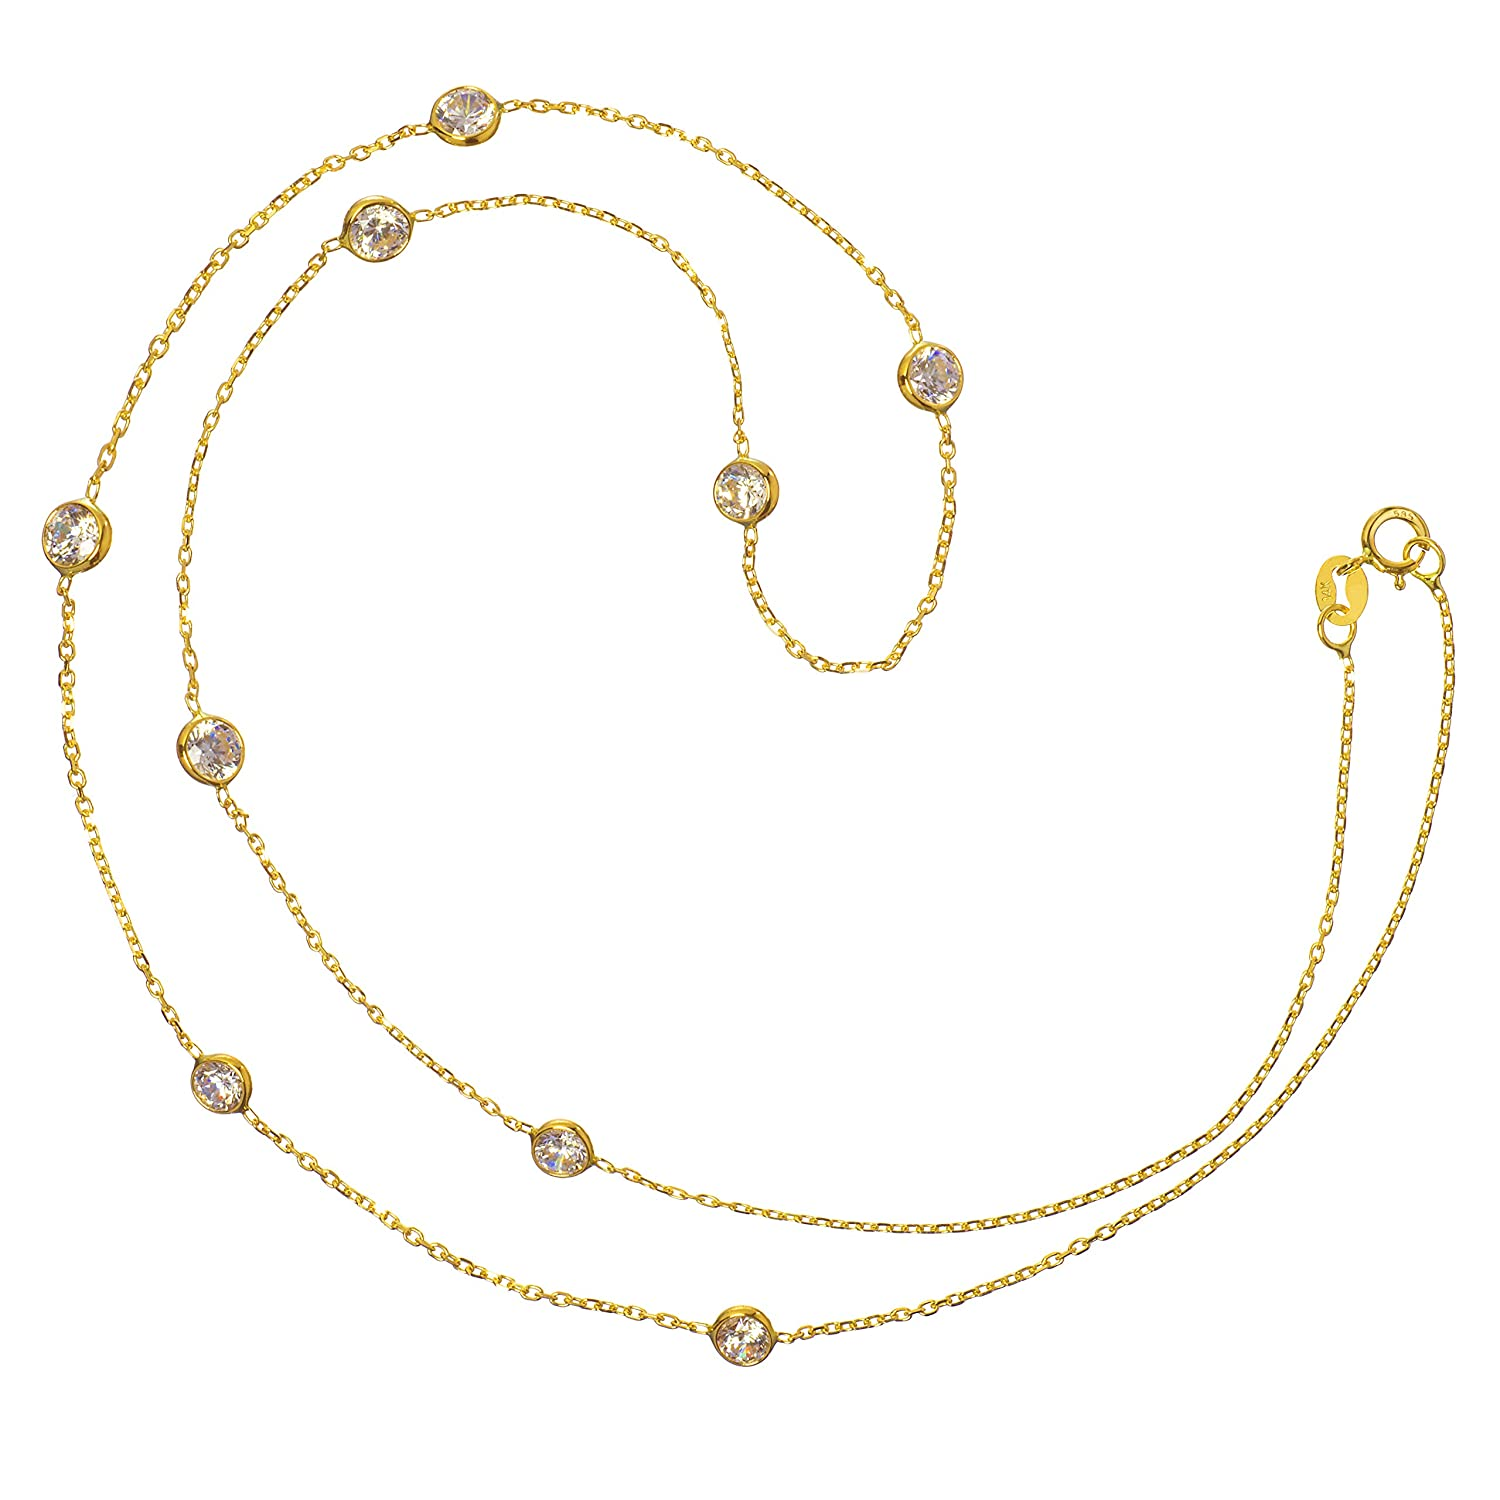 With Gift Box 14K Solid Gold or Sterling Silver Cubic Zirconia Station Necklace or Bracelet 7 Inch or 18 Inch Length Cable Rolo Chain